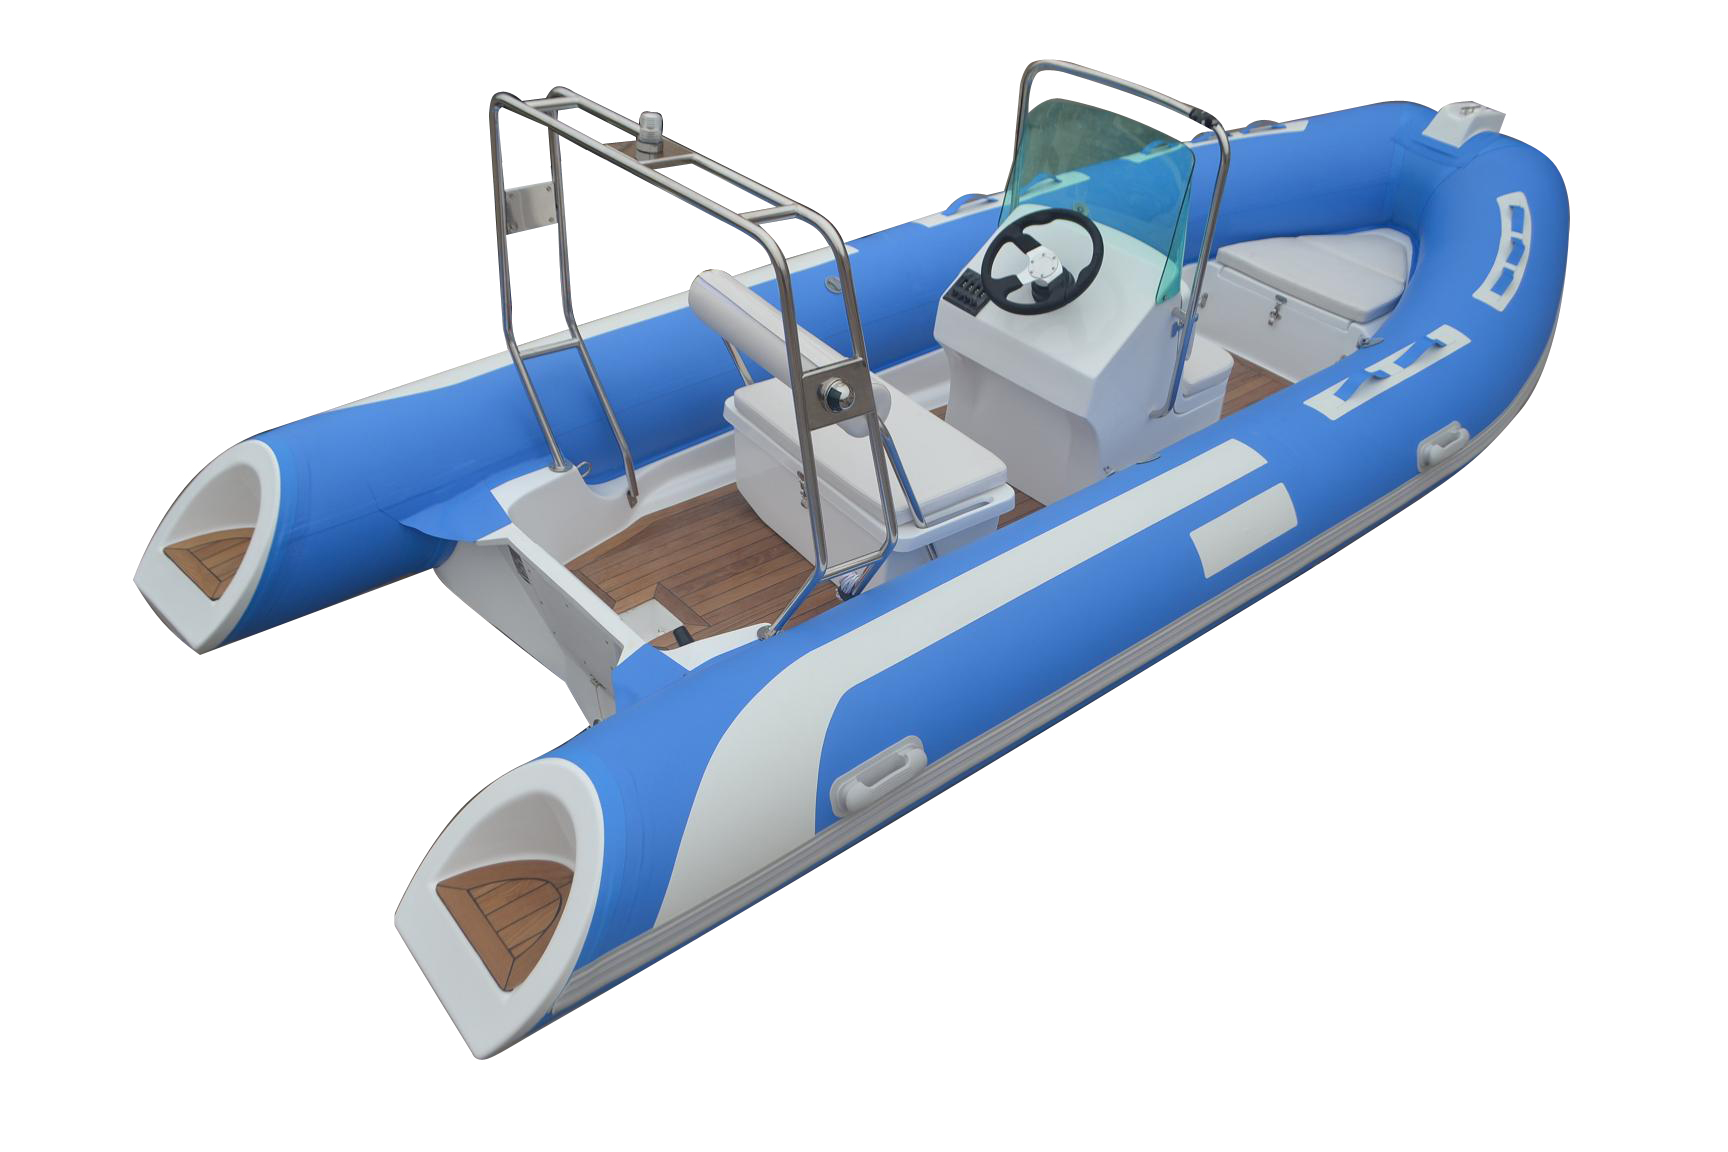 4 8m Rib Inflatable Fishing Boats For Sale Used Outboard Motors - Buy Boats  For Sale,Rib Inflatable Boats,Boat Product on Alibaba com